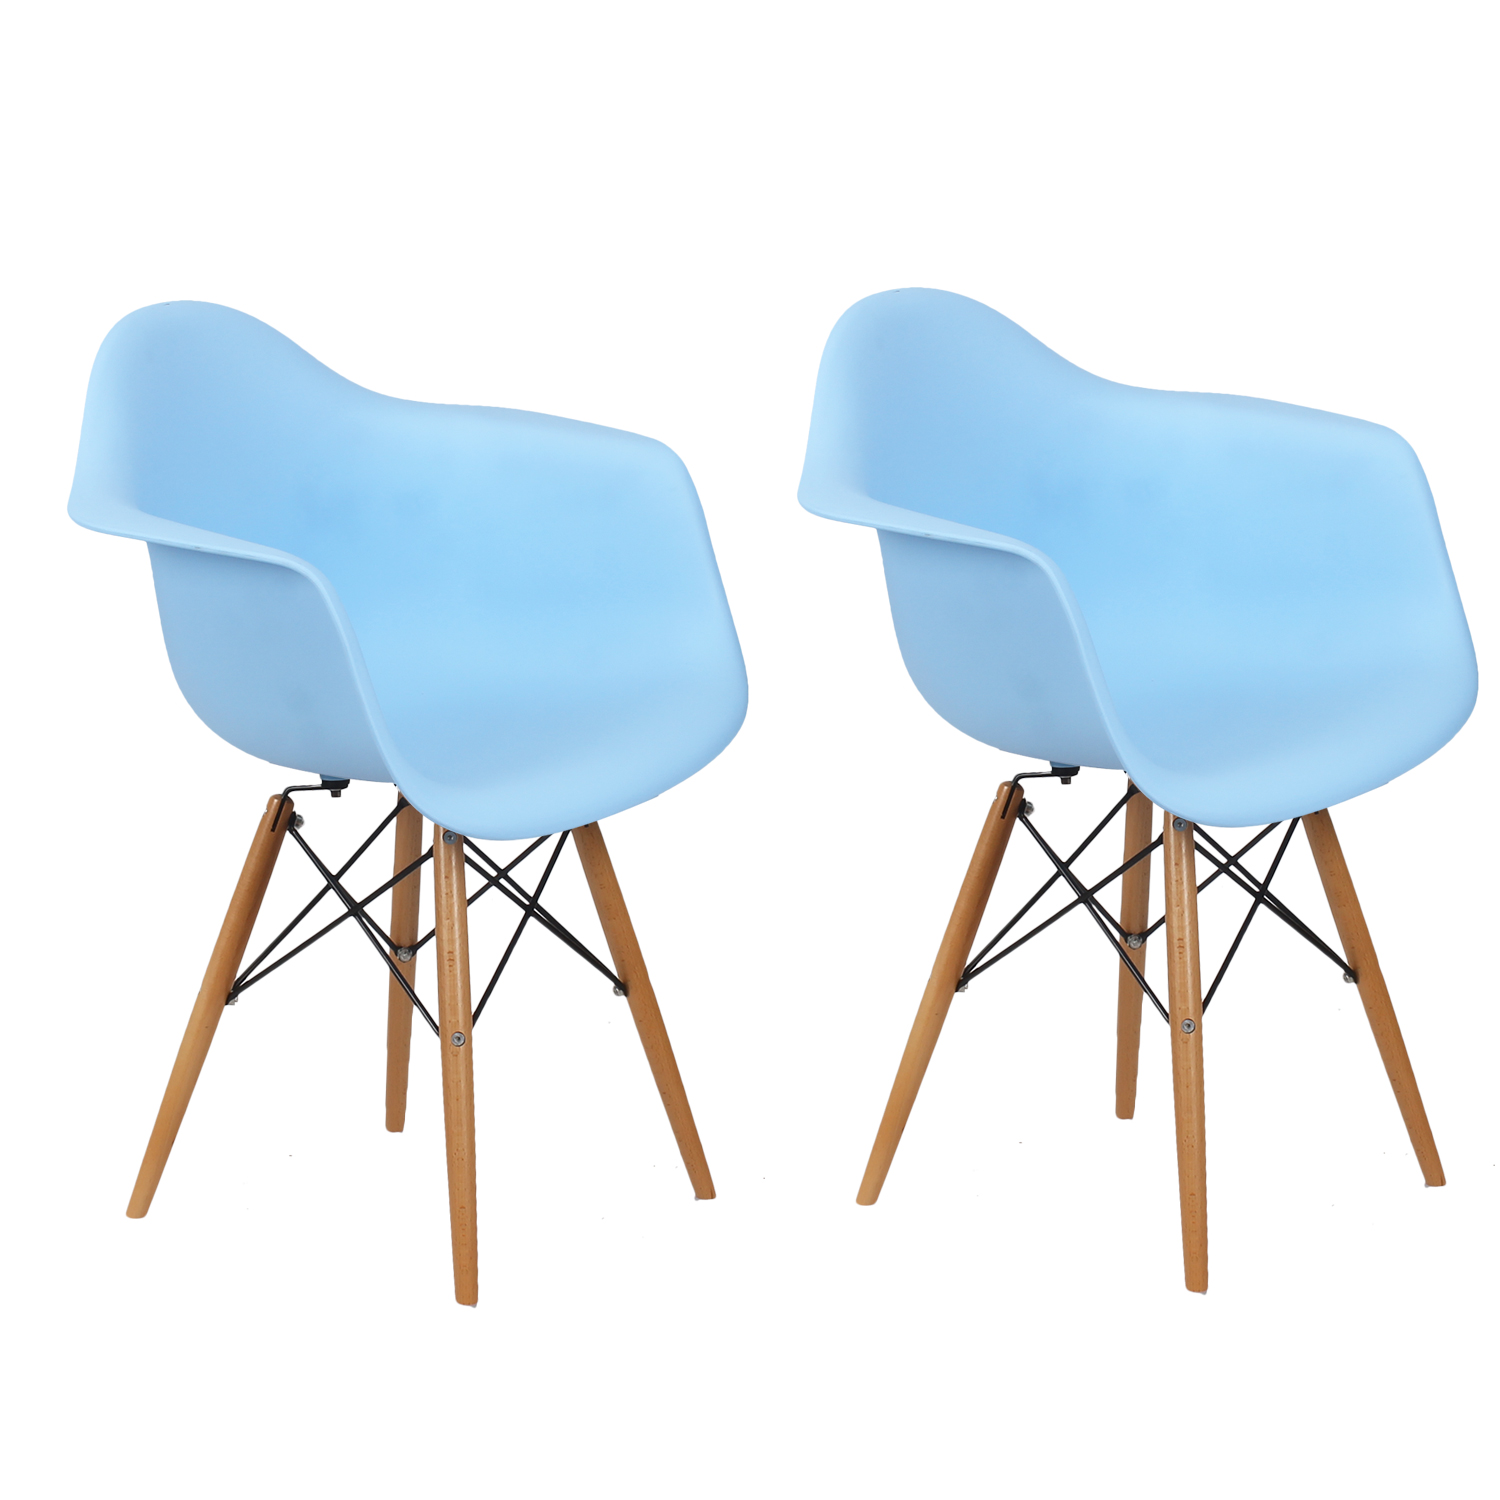 Light Blue Dining Chairs Decenthome Decenthome Light Blue Charles And Ray Eames